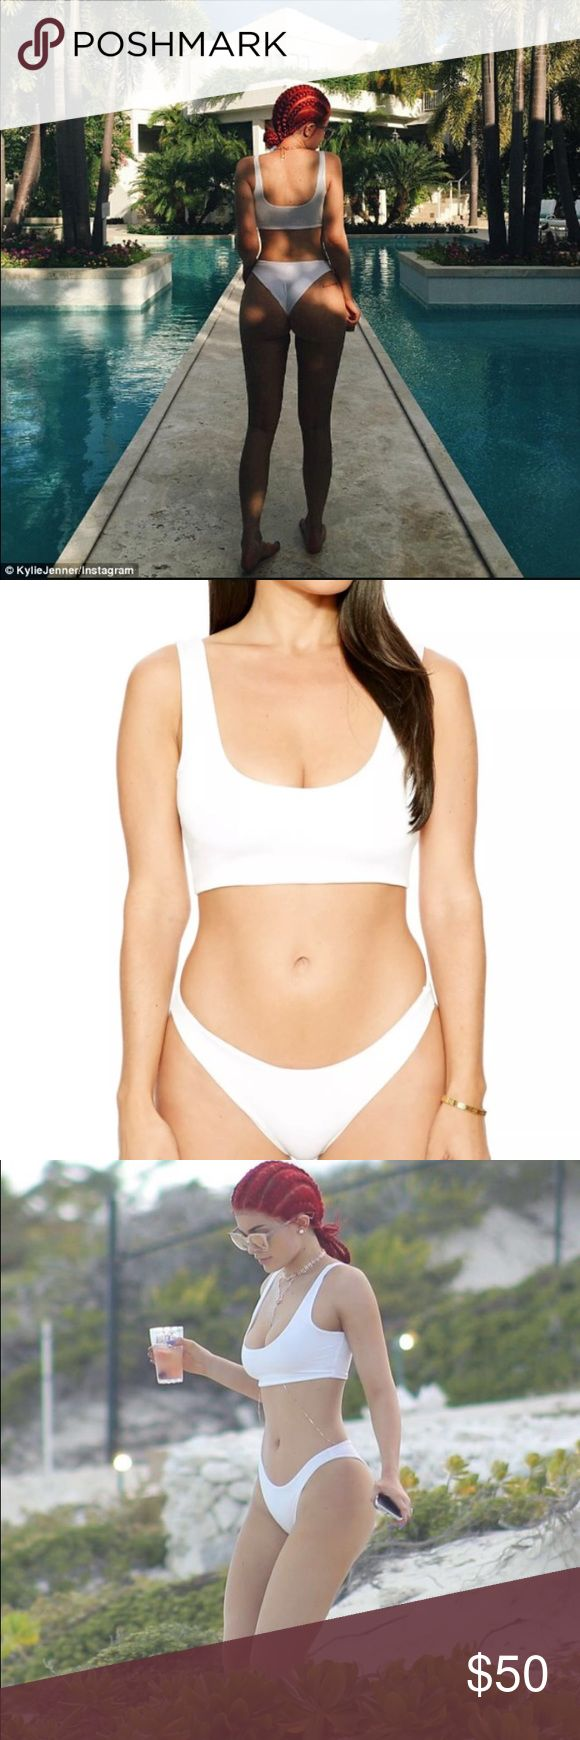 Naked Wardrobe crop top white bikini set ASO Kylie New with tags attached Naked Wardrobe white bikini set. The bikini has a zipperless pull on construction and the bikini bottoms are a Brazilian cut which compliments the crop top bikini top nicely. Both pieces are lined, and not see thru at all. The set has been worn by Kylie Jenner and multiple Kardashian fashionistas. Get the same exact brand and bikini as Kylie for a fraction of the original MSRP! Naked Wardrobe Swim Bikinis